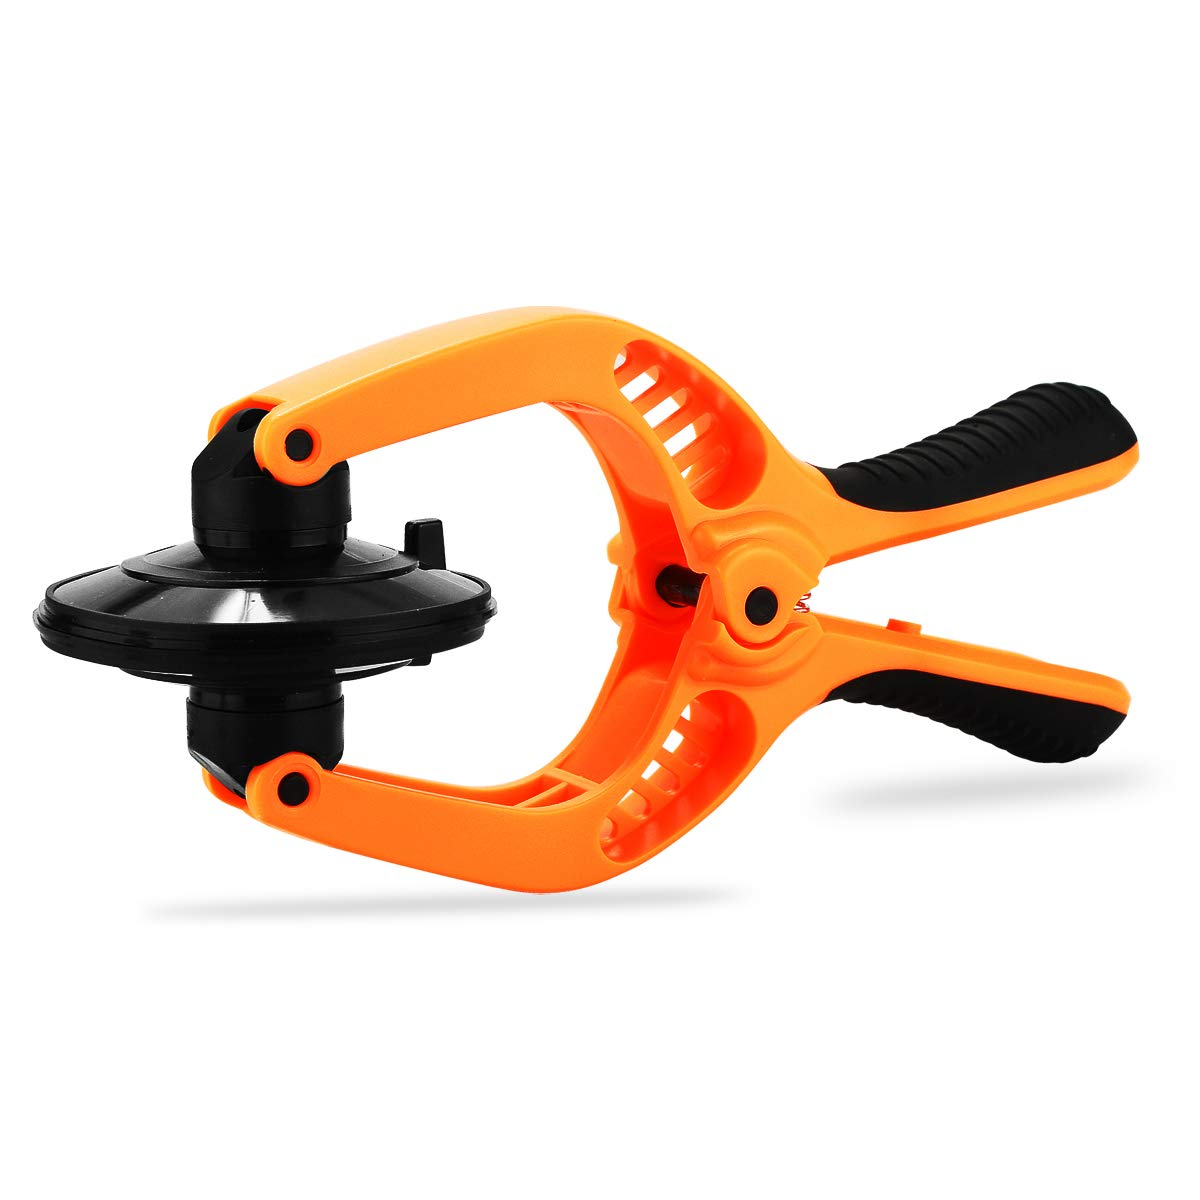 LCD Opening Pliers,Boenfu LCD Screen Opening Pliers Cell Phone Repair Tool with Super Strong Suction Cup Platform for iPad iPhone iPod and All Kinds of Smartphones